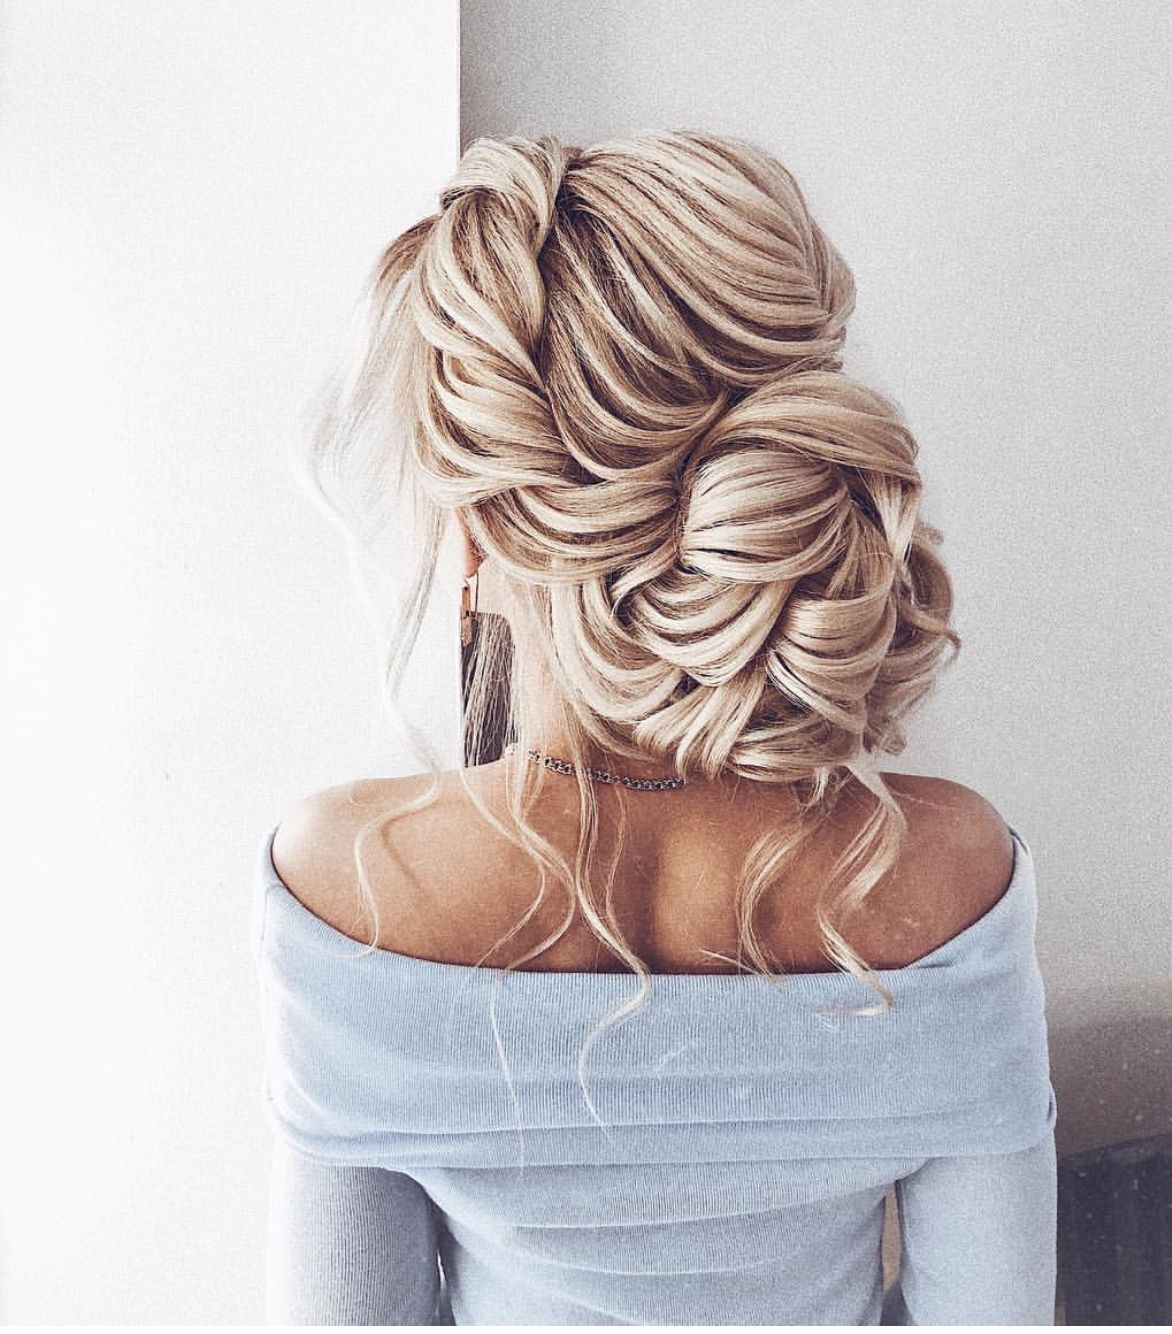 """Vera Fursova <a class=""""pintag"""" href=""""/explore/updos/"""" title=""""#updos explore Pinterest"""">#updos</a> <a class=""""pintag"""" href=""""/explore/buns/"""" title=""""#buns explore Pinterest"""">#buns</a> <a class=""""pintag"""" href=""""/explore/MzManerzHairTeam/"""" title=""""#MzManerzHairTeam explore Pinterest"""">#MzManerzHairTeam</a> 